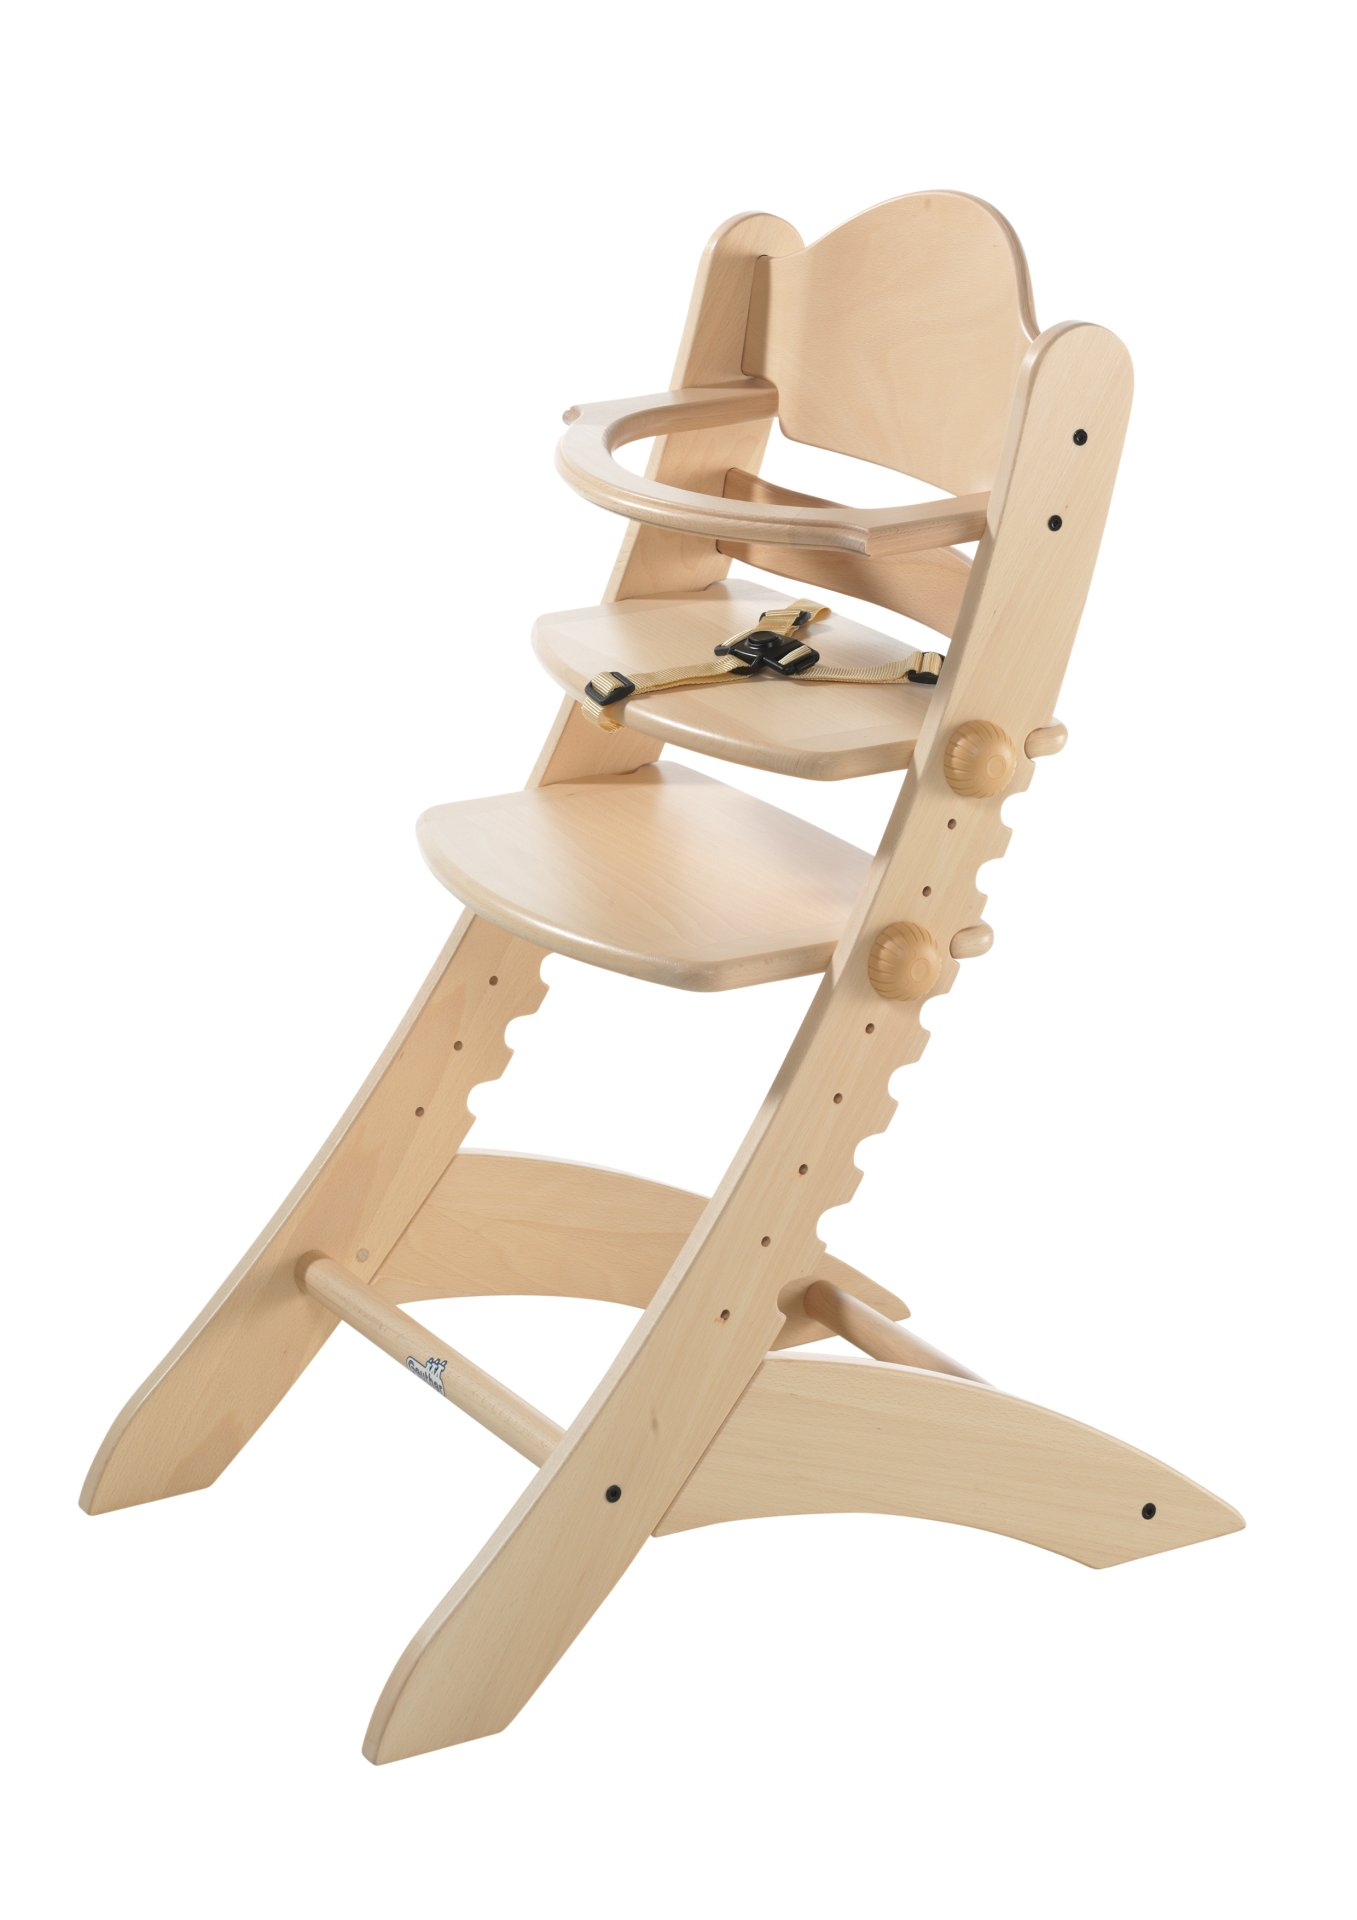 Best of Geuther Highchair Swing Geuther Highchair Swing extremely stable thanks to the massive Beautiful - Luxury stylish high chair Inspirational